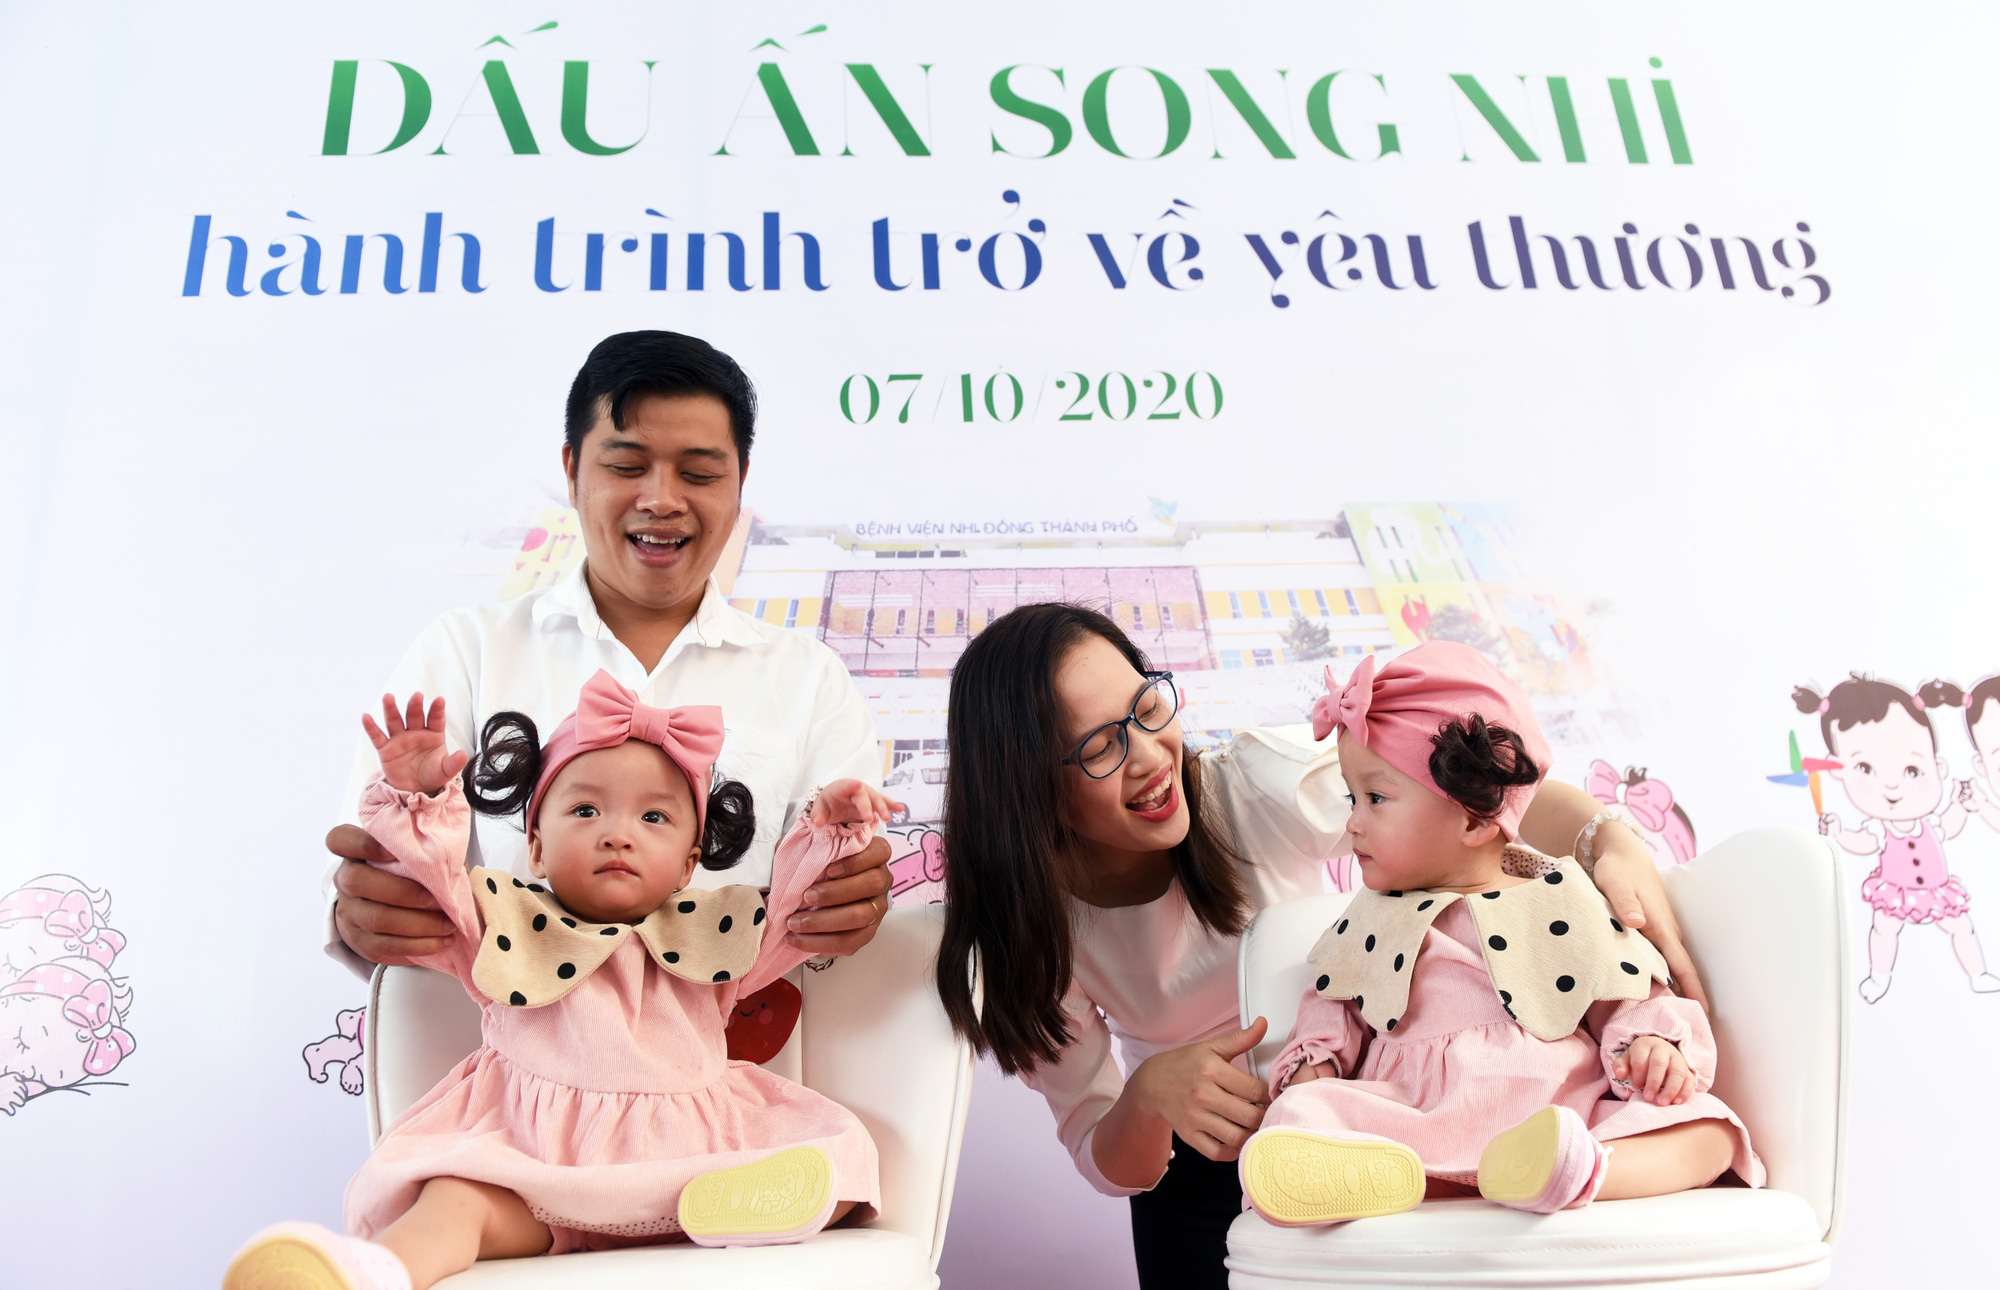 Truc Nhi and Dieu Nhi and their parents are pictured in Ho Chi Minh City on October 7, 2020. The conjoined twins underwent a separation surgery in July 2020. Photo: Duyen Phan / Tuoi Tre